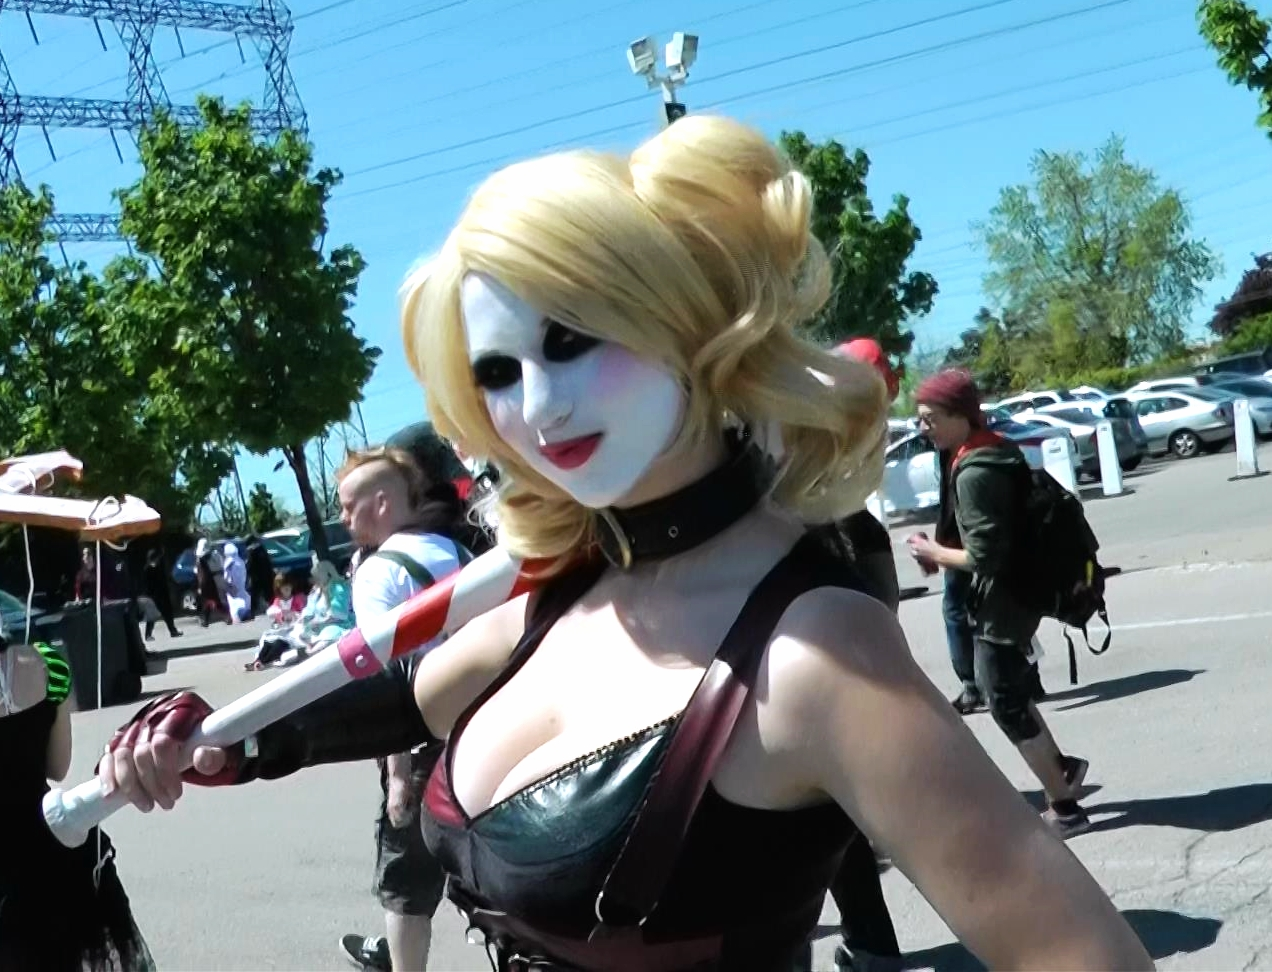 Harley Quinn from DC Comicslooks so devious with her matching baseball bat.